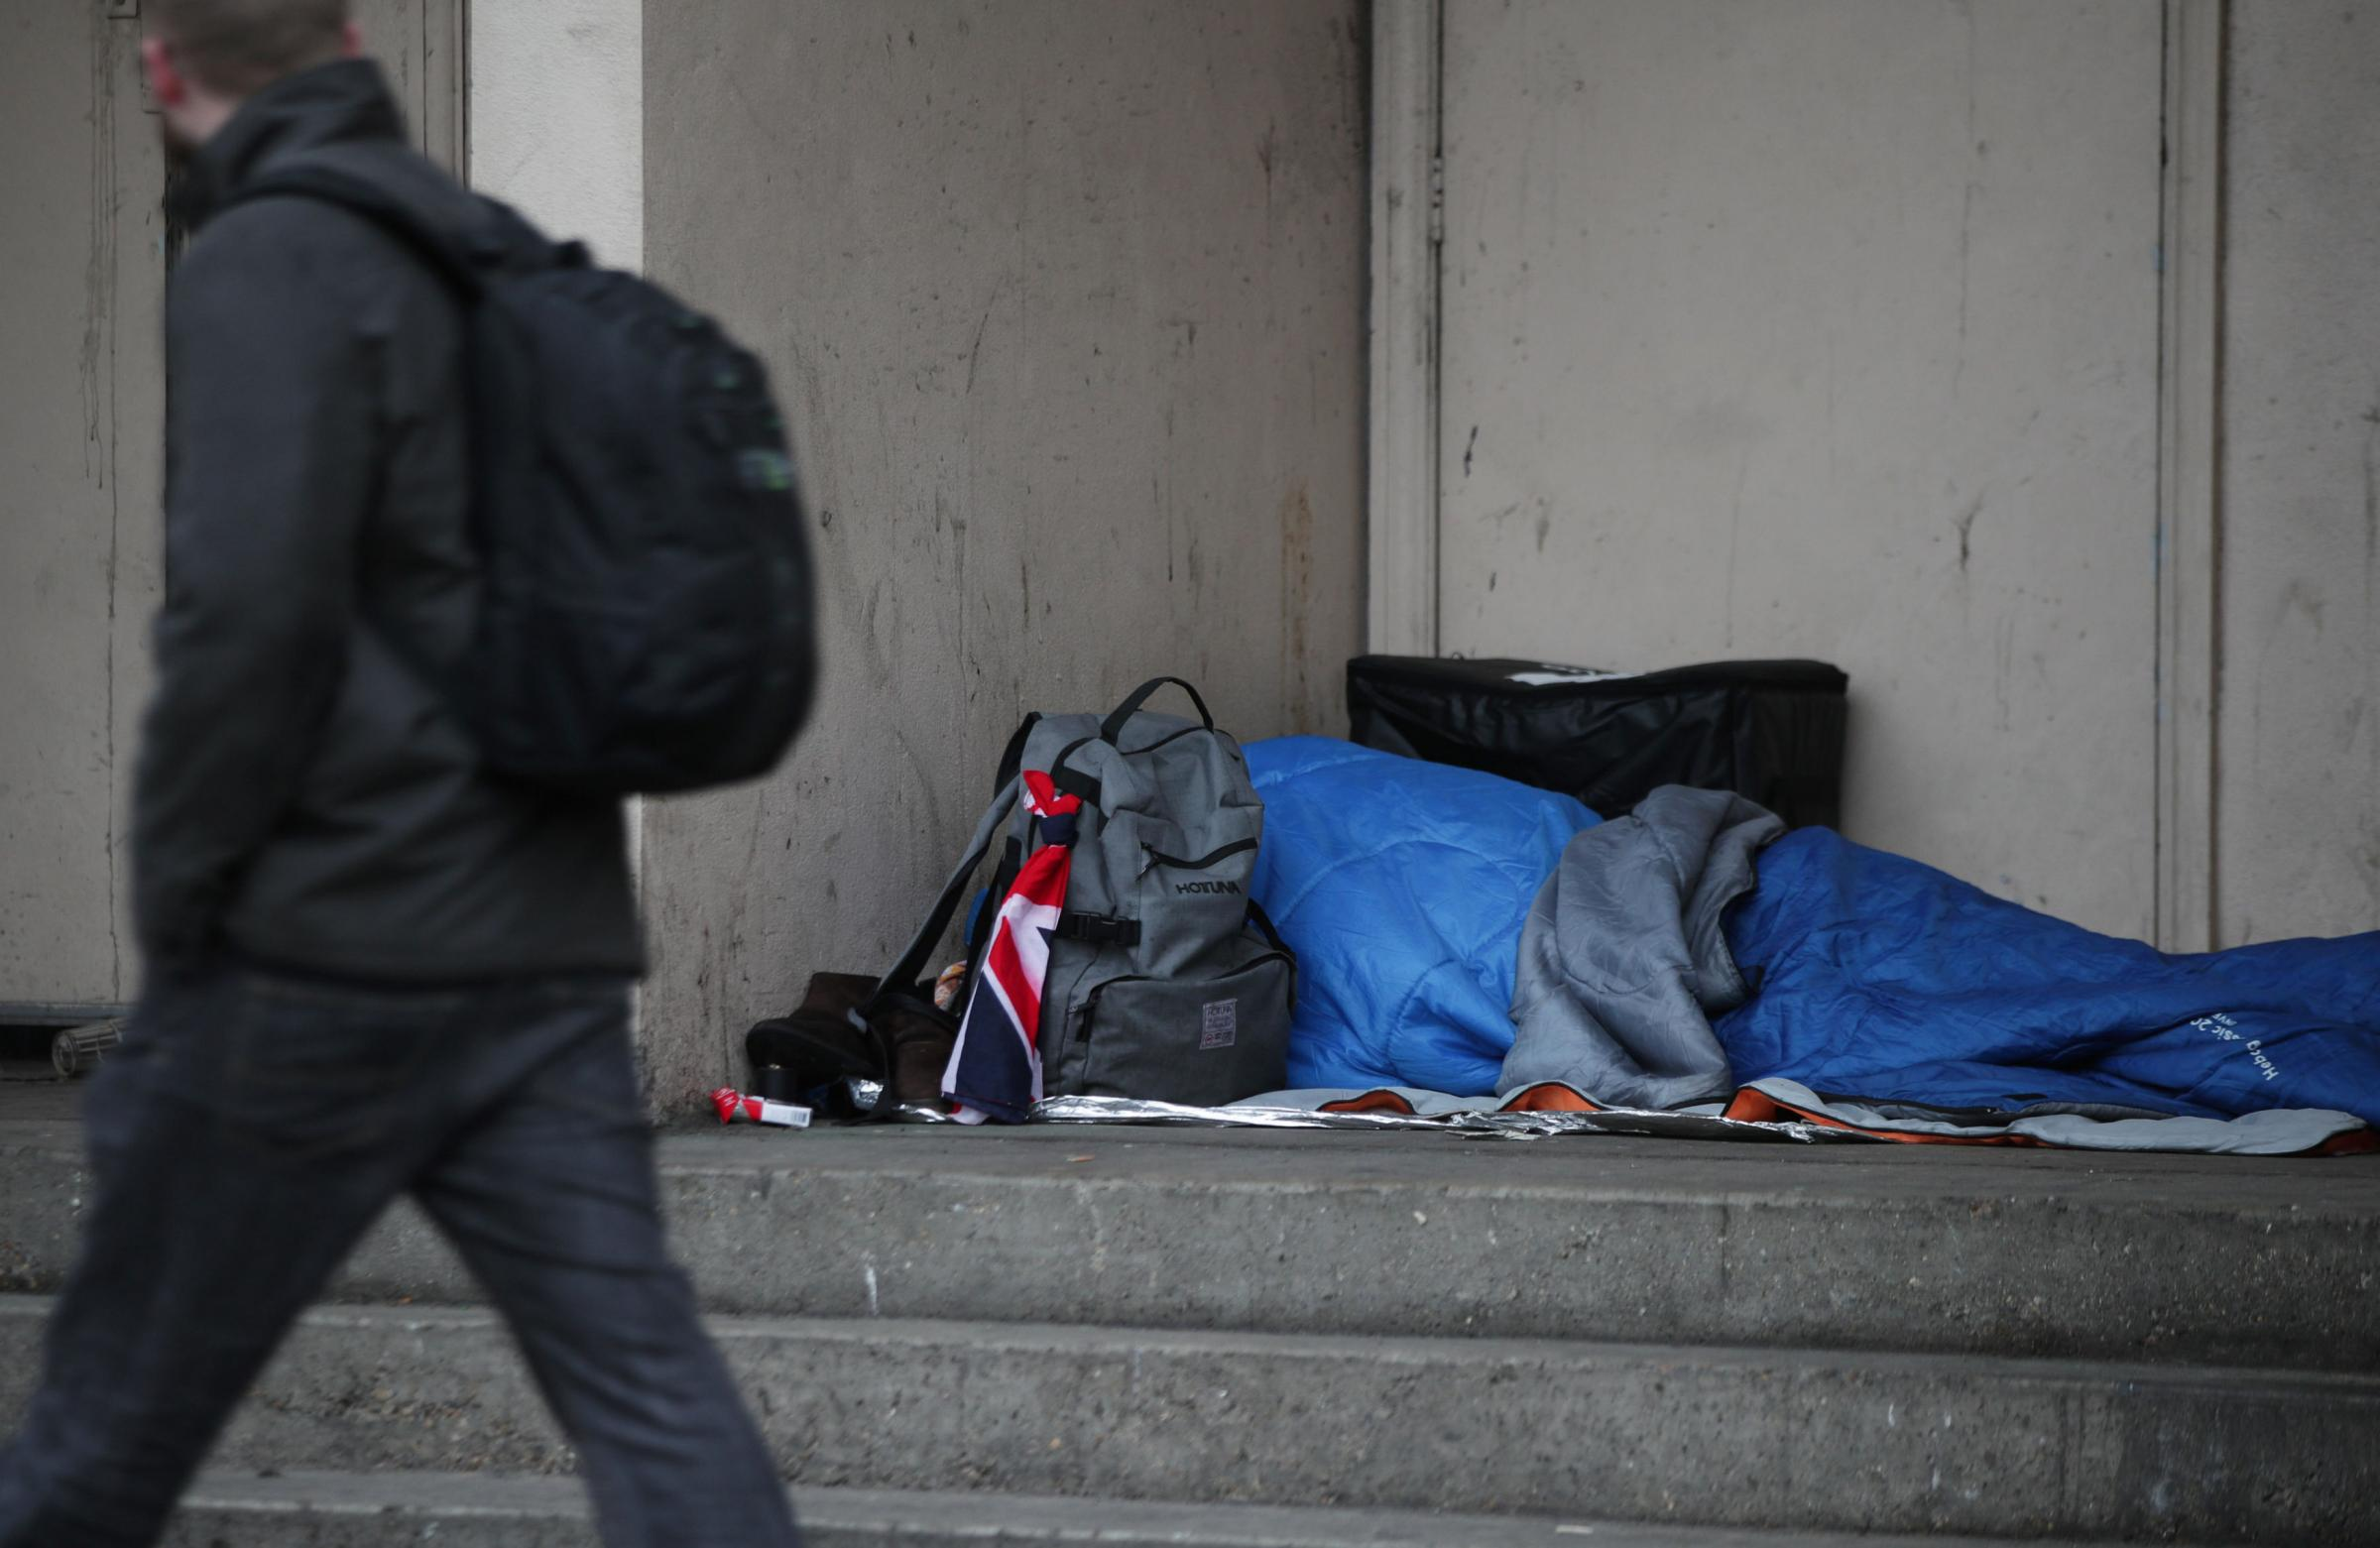 HELPING : A person sleeping rough in a doorway